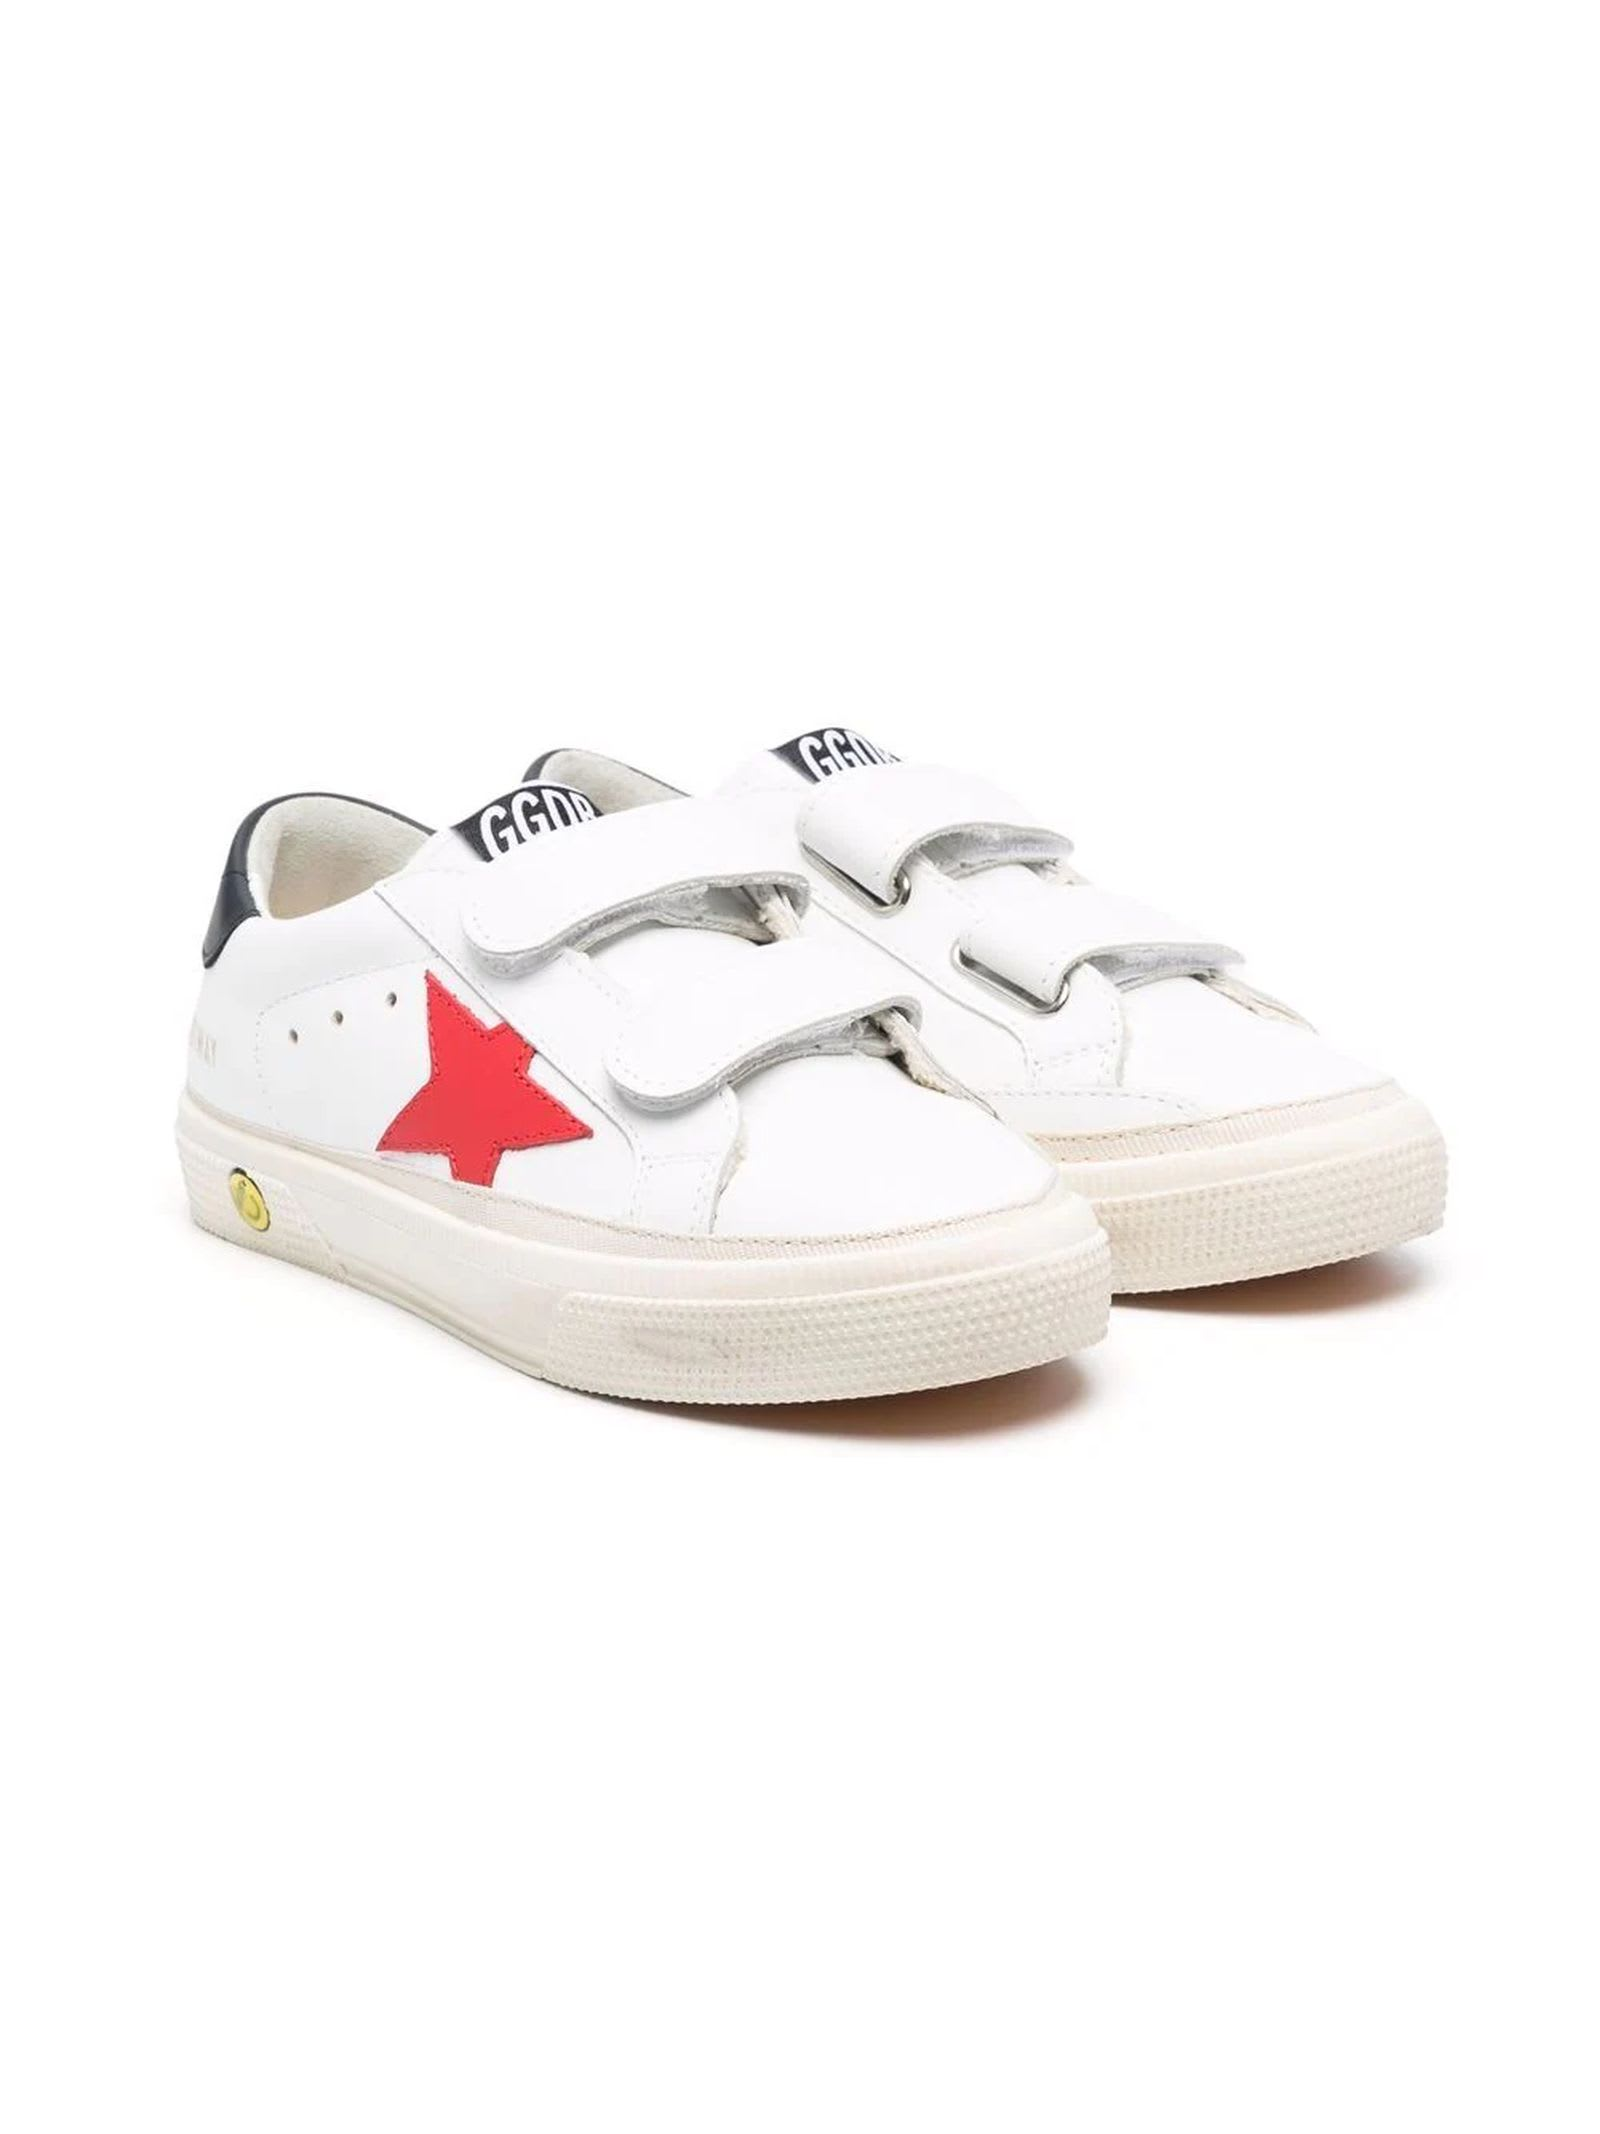 Golden Goose White Leather Old School Sneakers